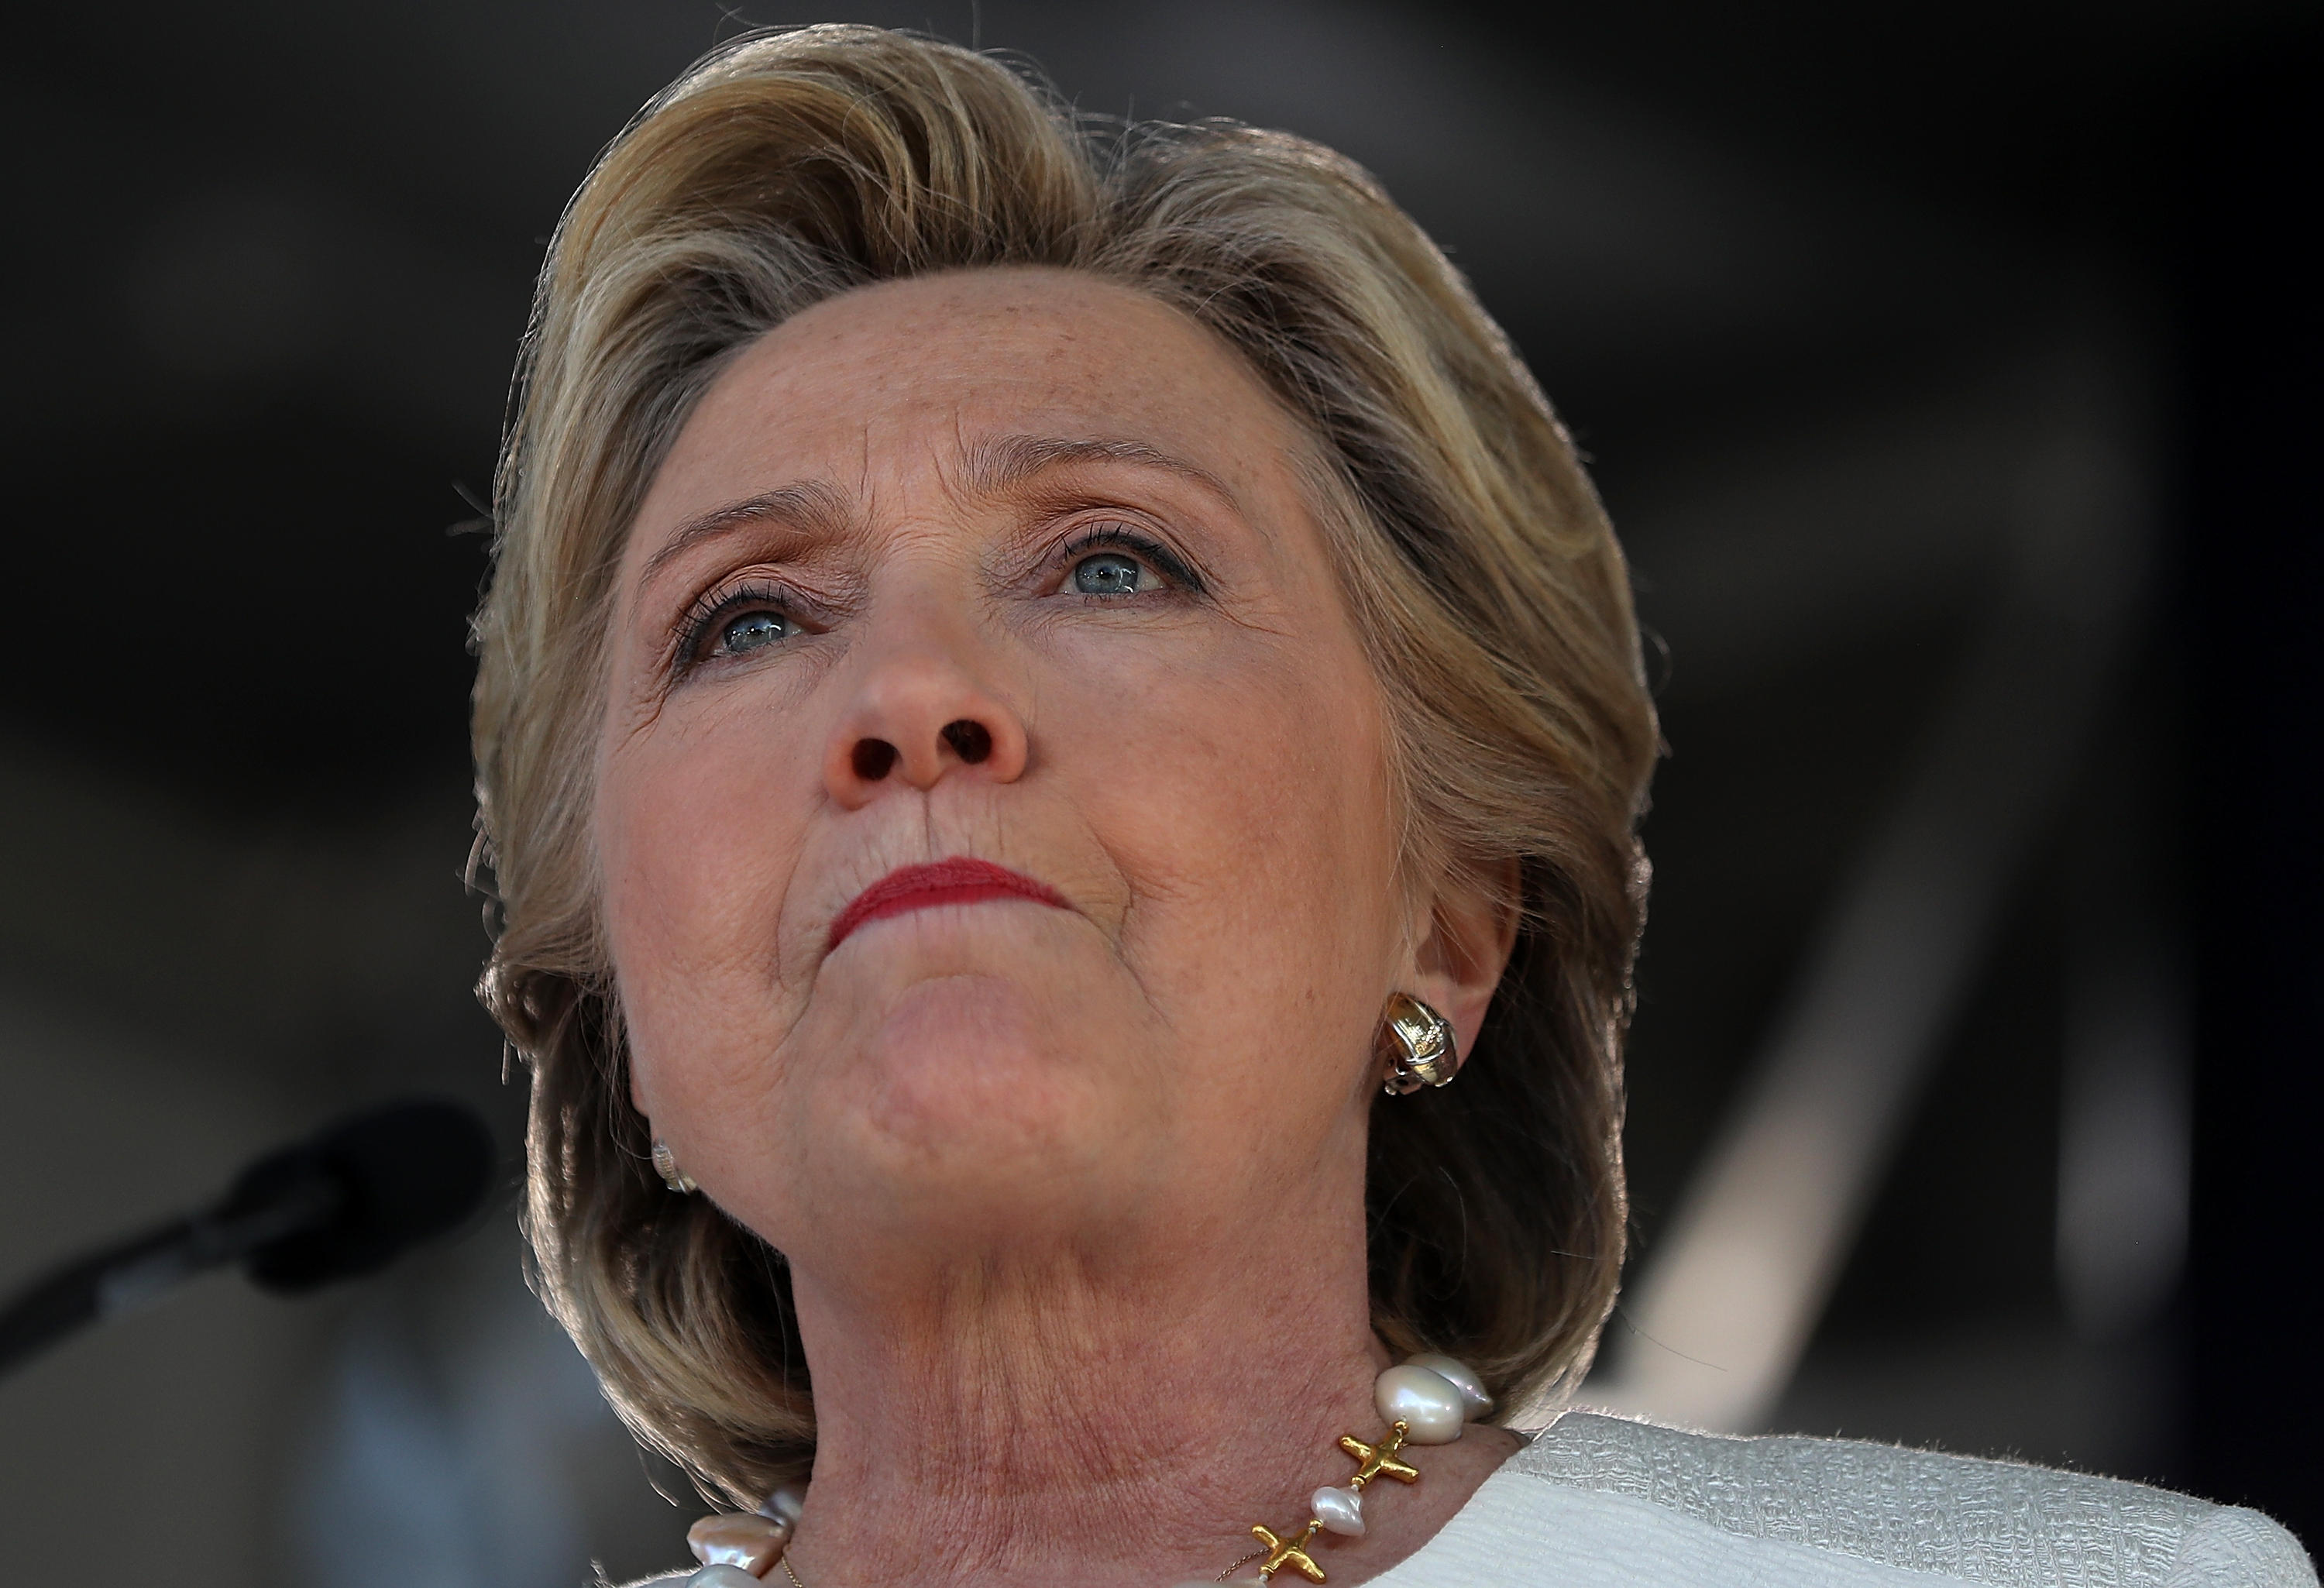 Republicans and Russian hackers have made Hillary Clinton the most transparent candidate in history